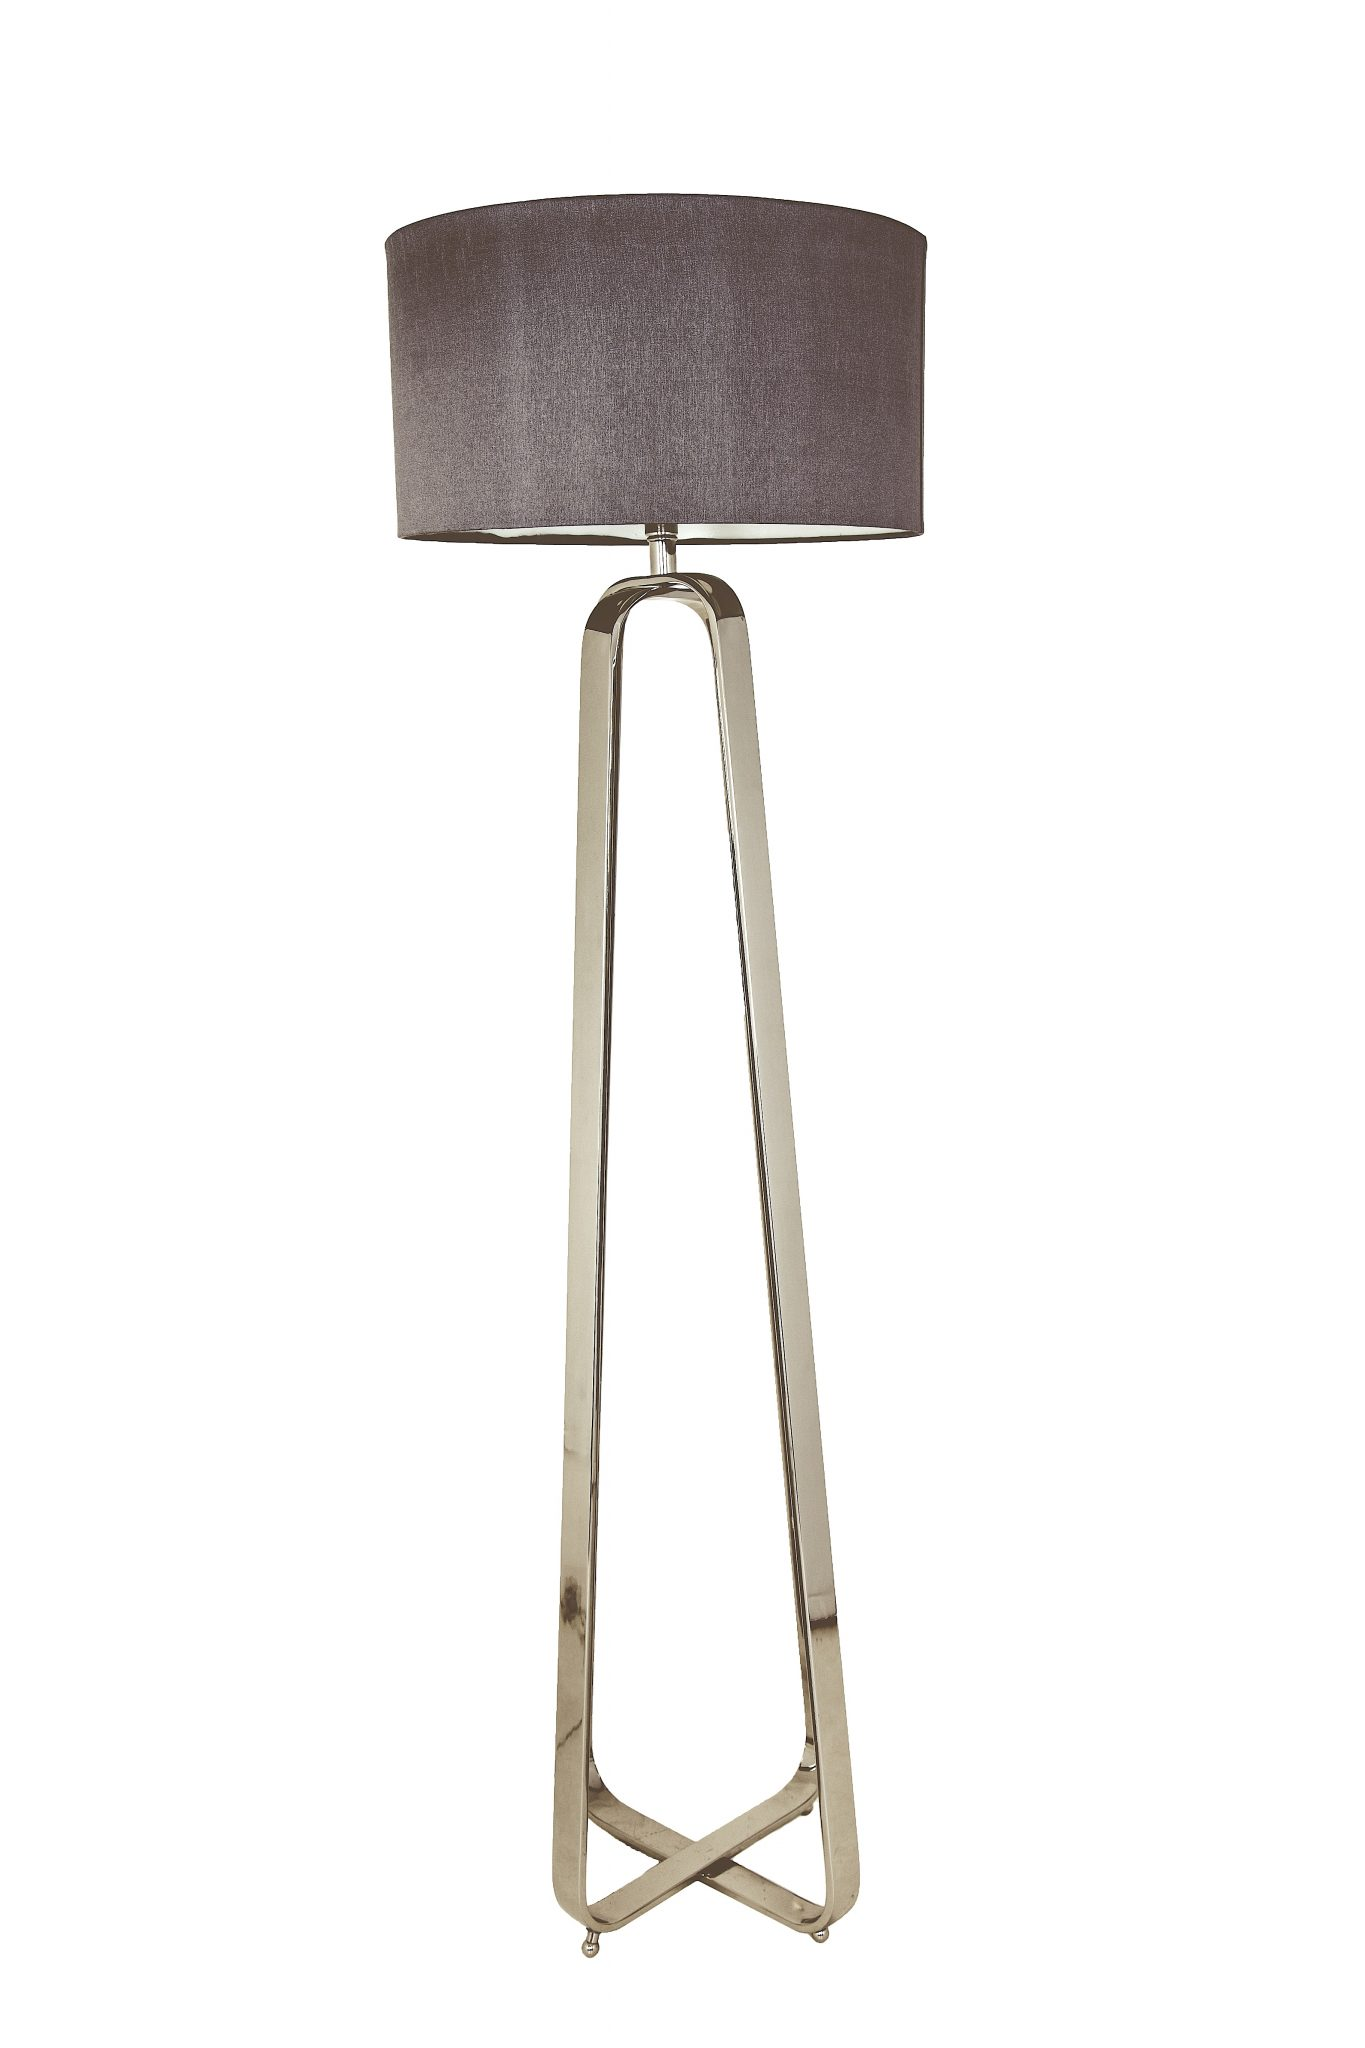 FONTANA TALL STANDING LAMP WITH SHADE -0